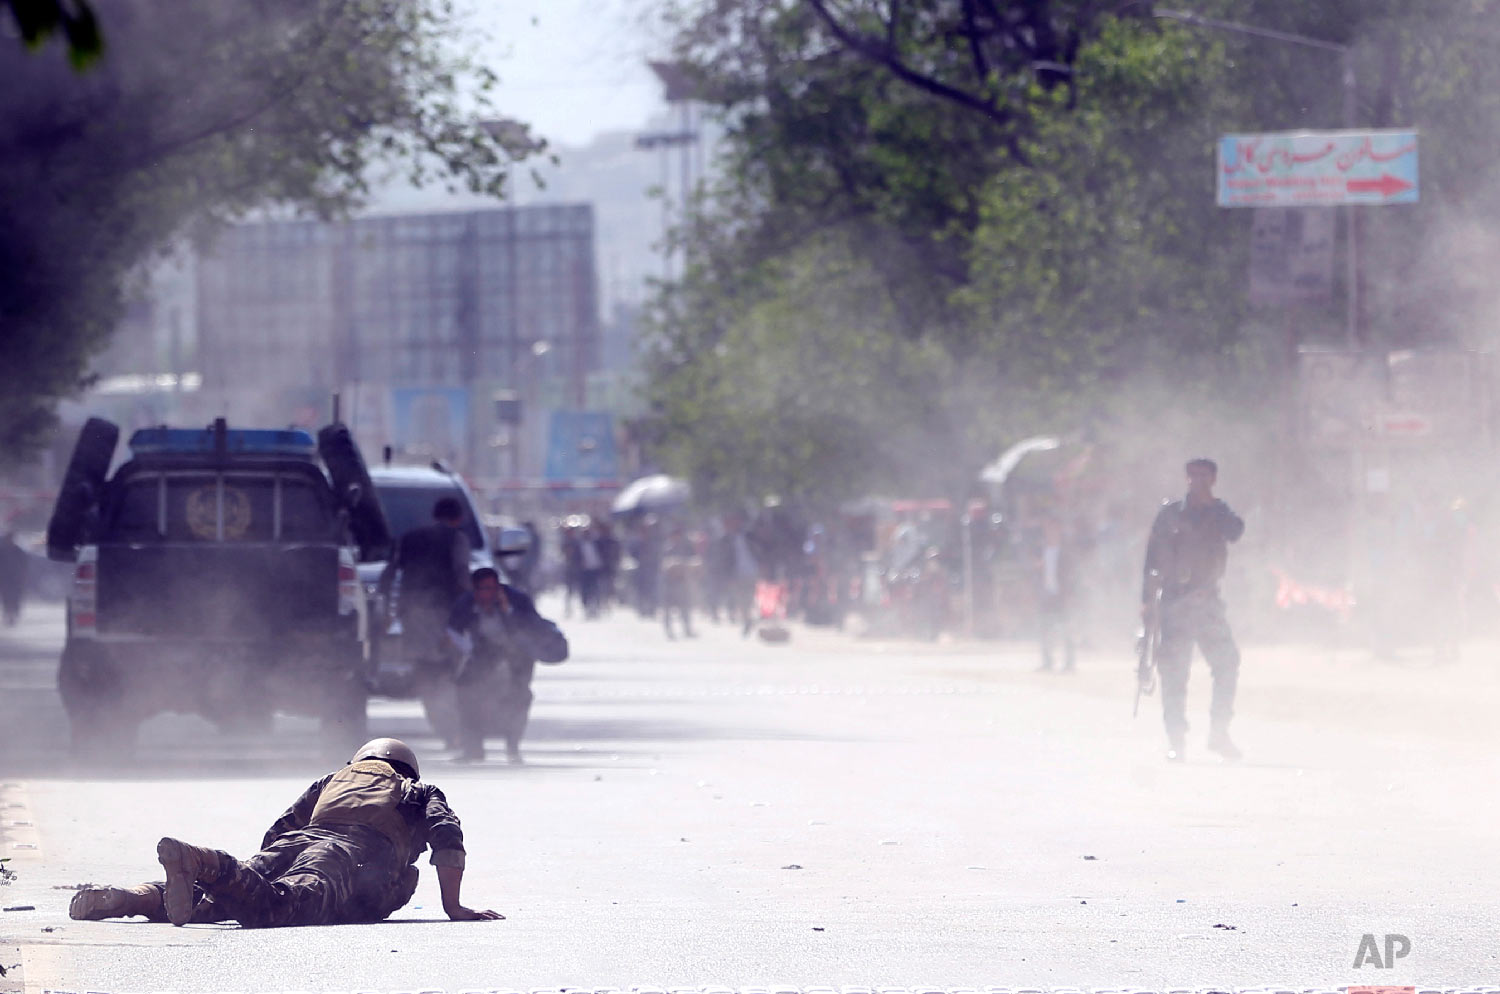 A soldier and a civilian lie low at the site of a suicide attack after the second bombing in Kabul, Afghanistan, April 30, 2018. (AP Photo/Massoud Hossaini)